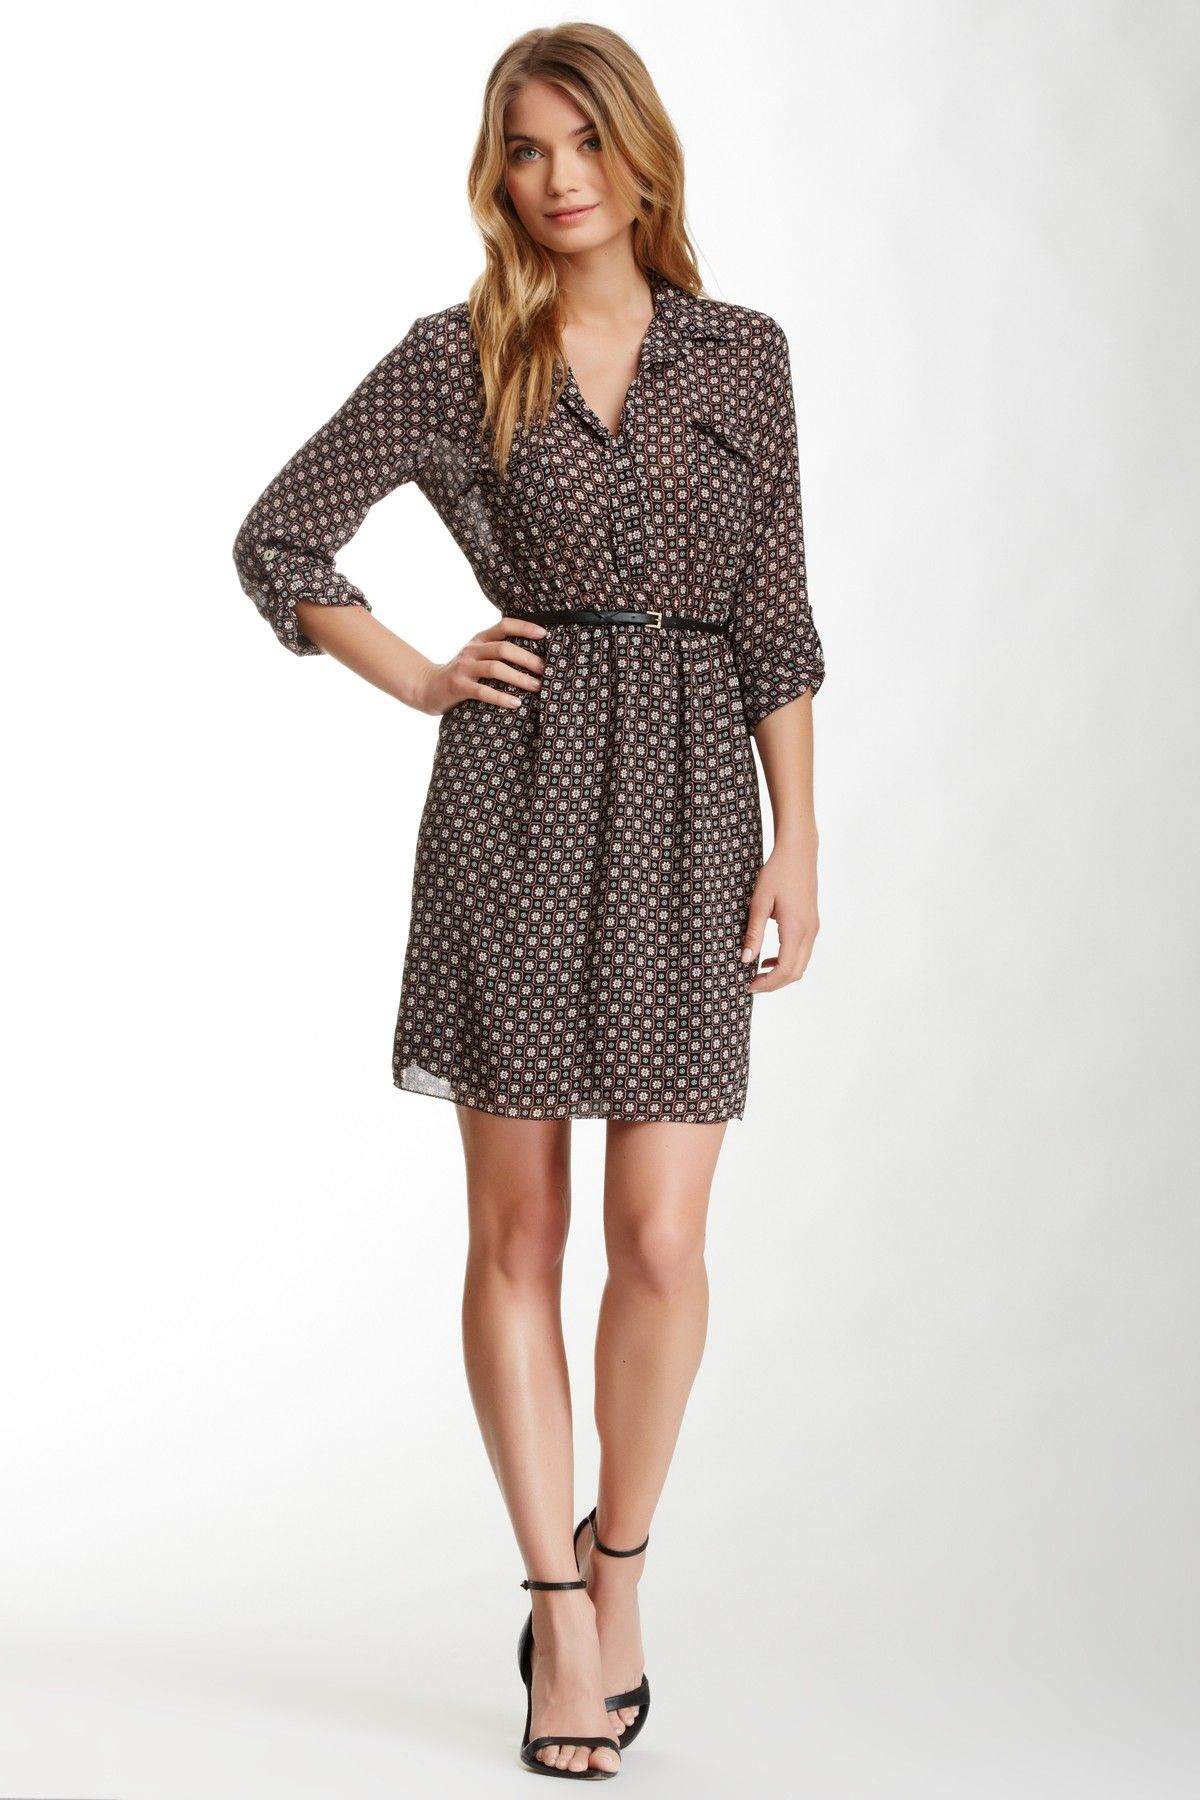 544e3e62045 Cute Belted Shirt Dresses